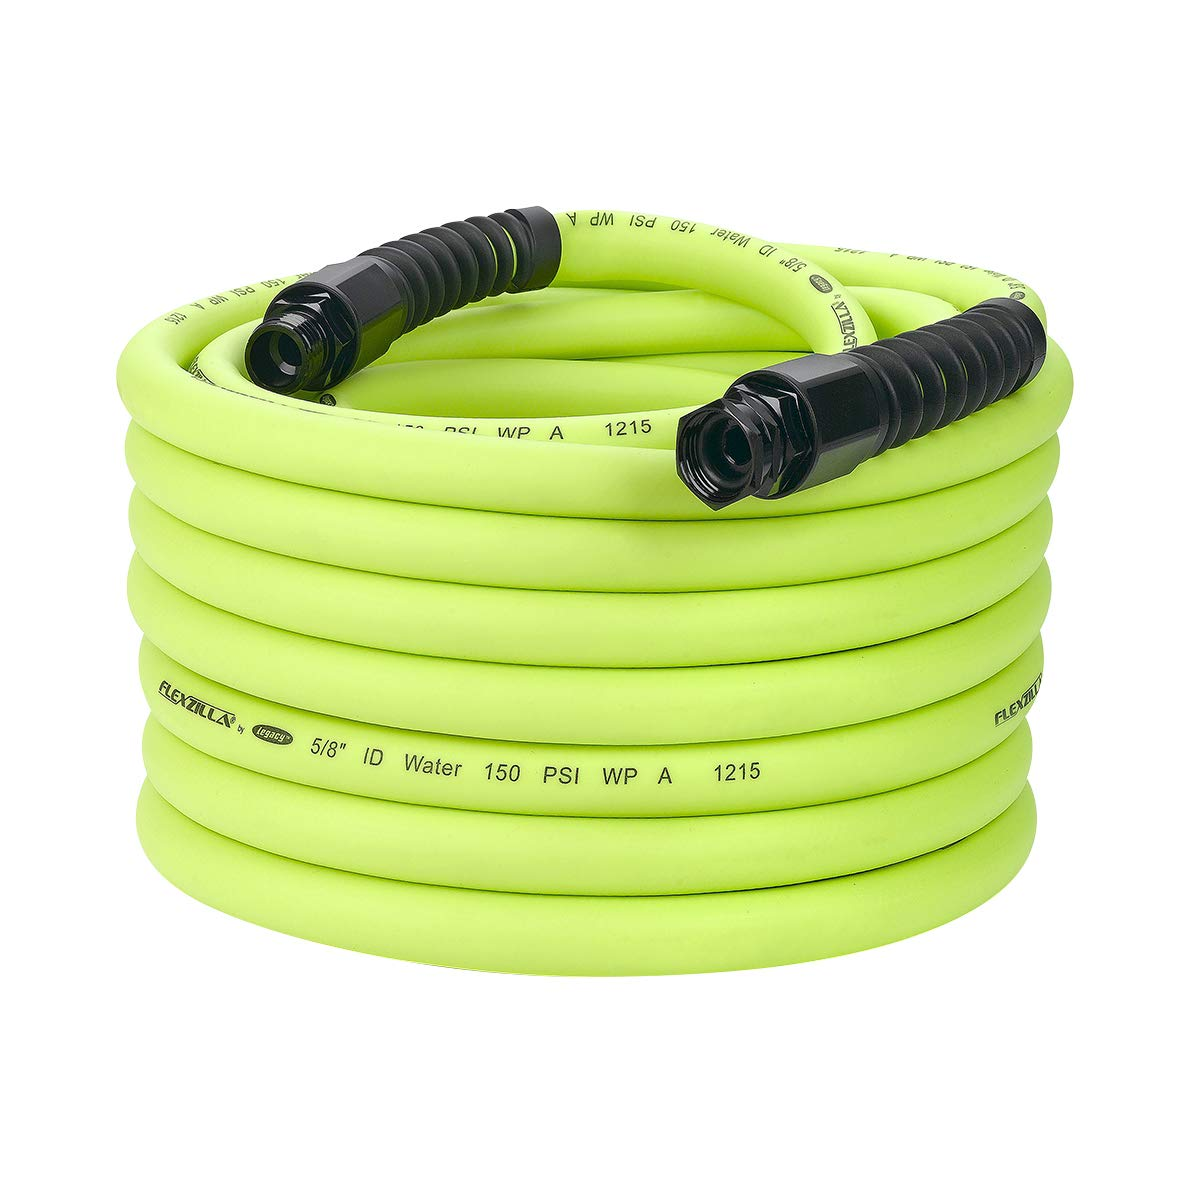 Flexzilla Pro Water Hose with Reusable Fittings, 5/8 in. x 75 ft., Heavy Duty, Lightweight, Drinking Water Safe  - HFZWP575 by Flexzilla